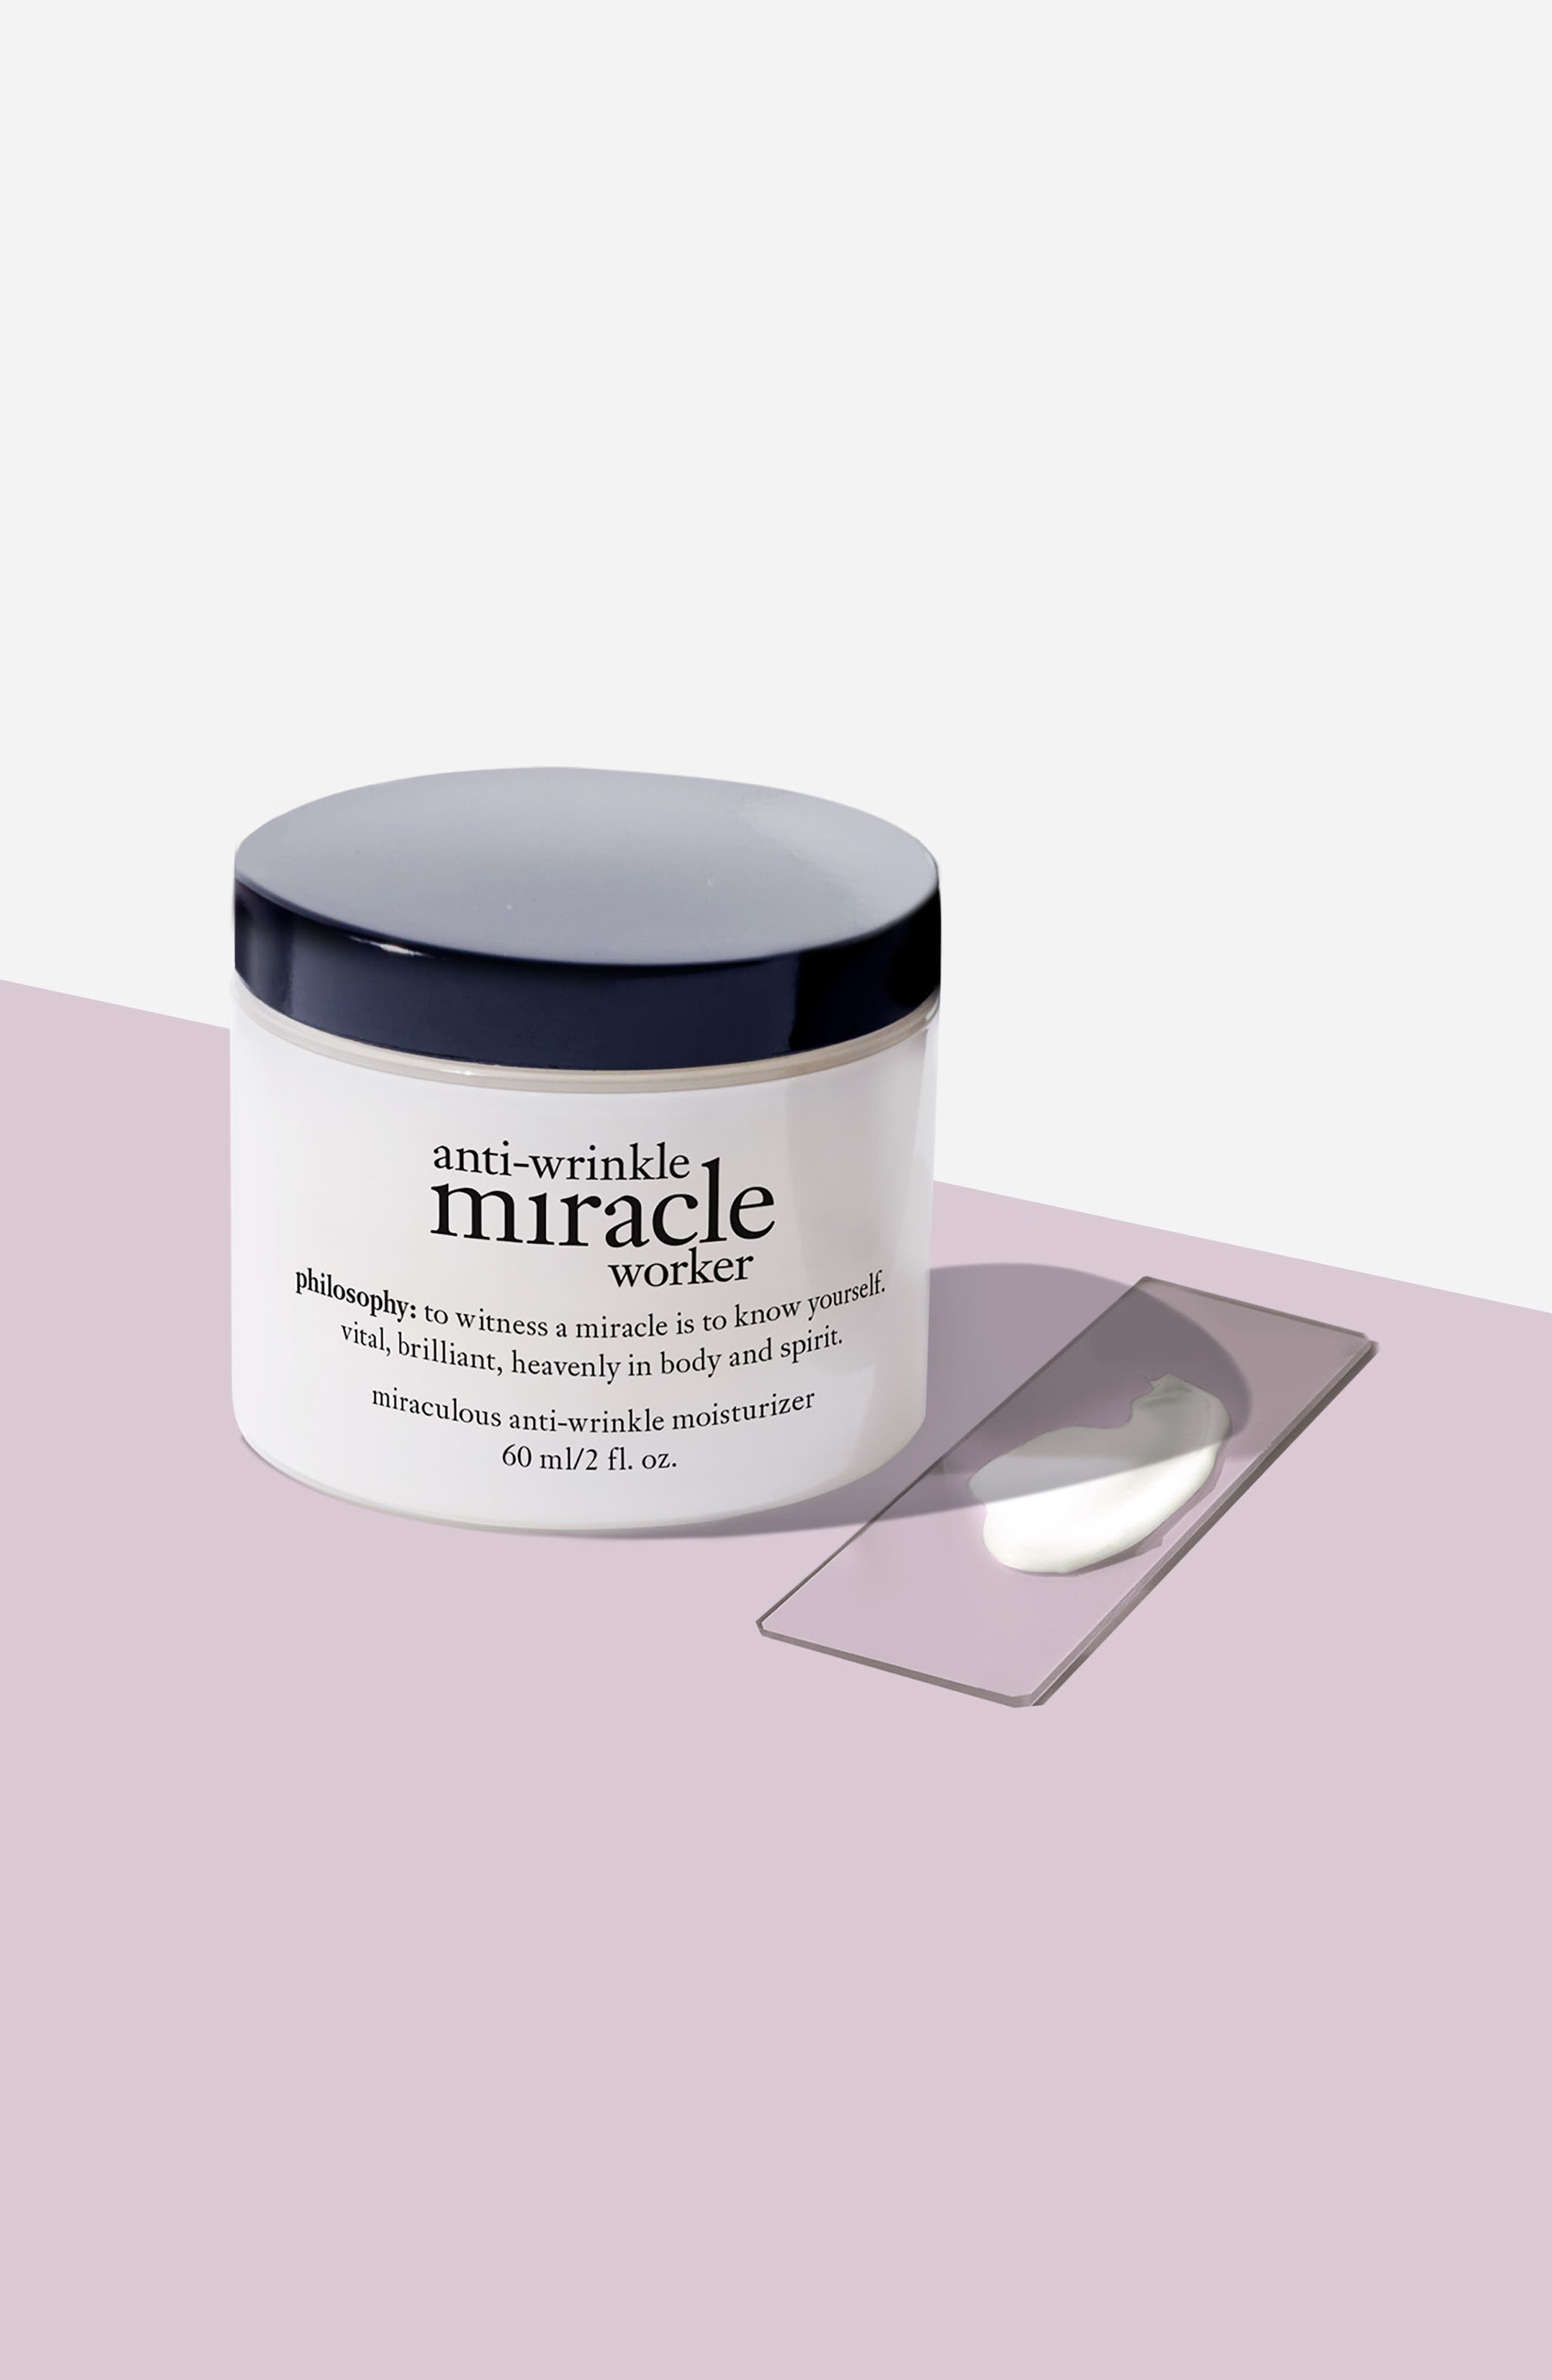 'anti-wrinkle miracle worker' miraculous anti-wrinkle moisturizer,                             Alternate thumbnail 4, color,                             NO COLOR